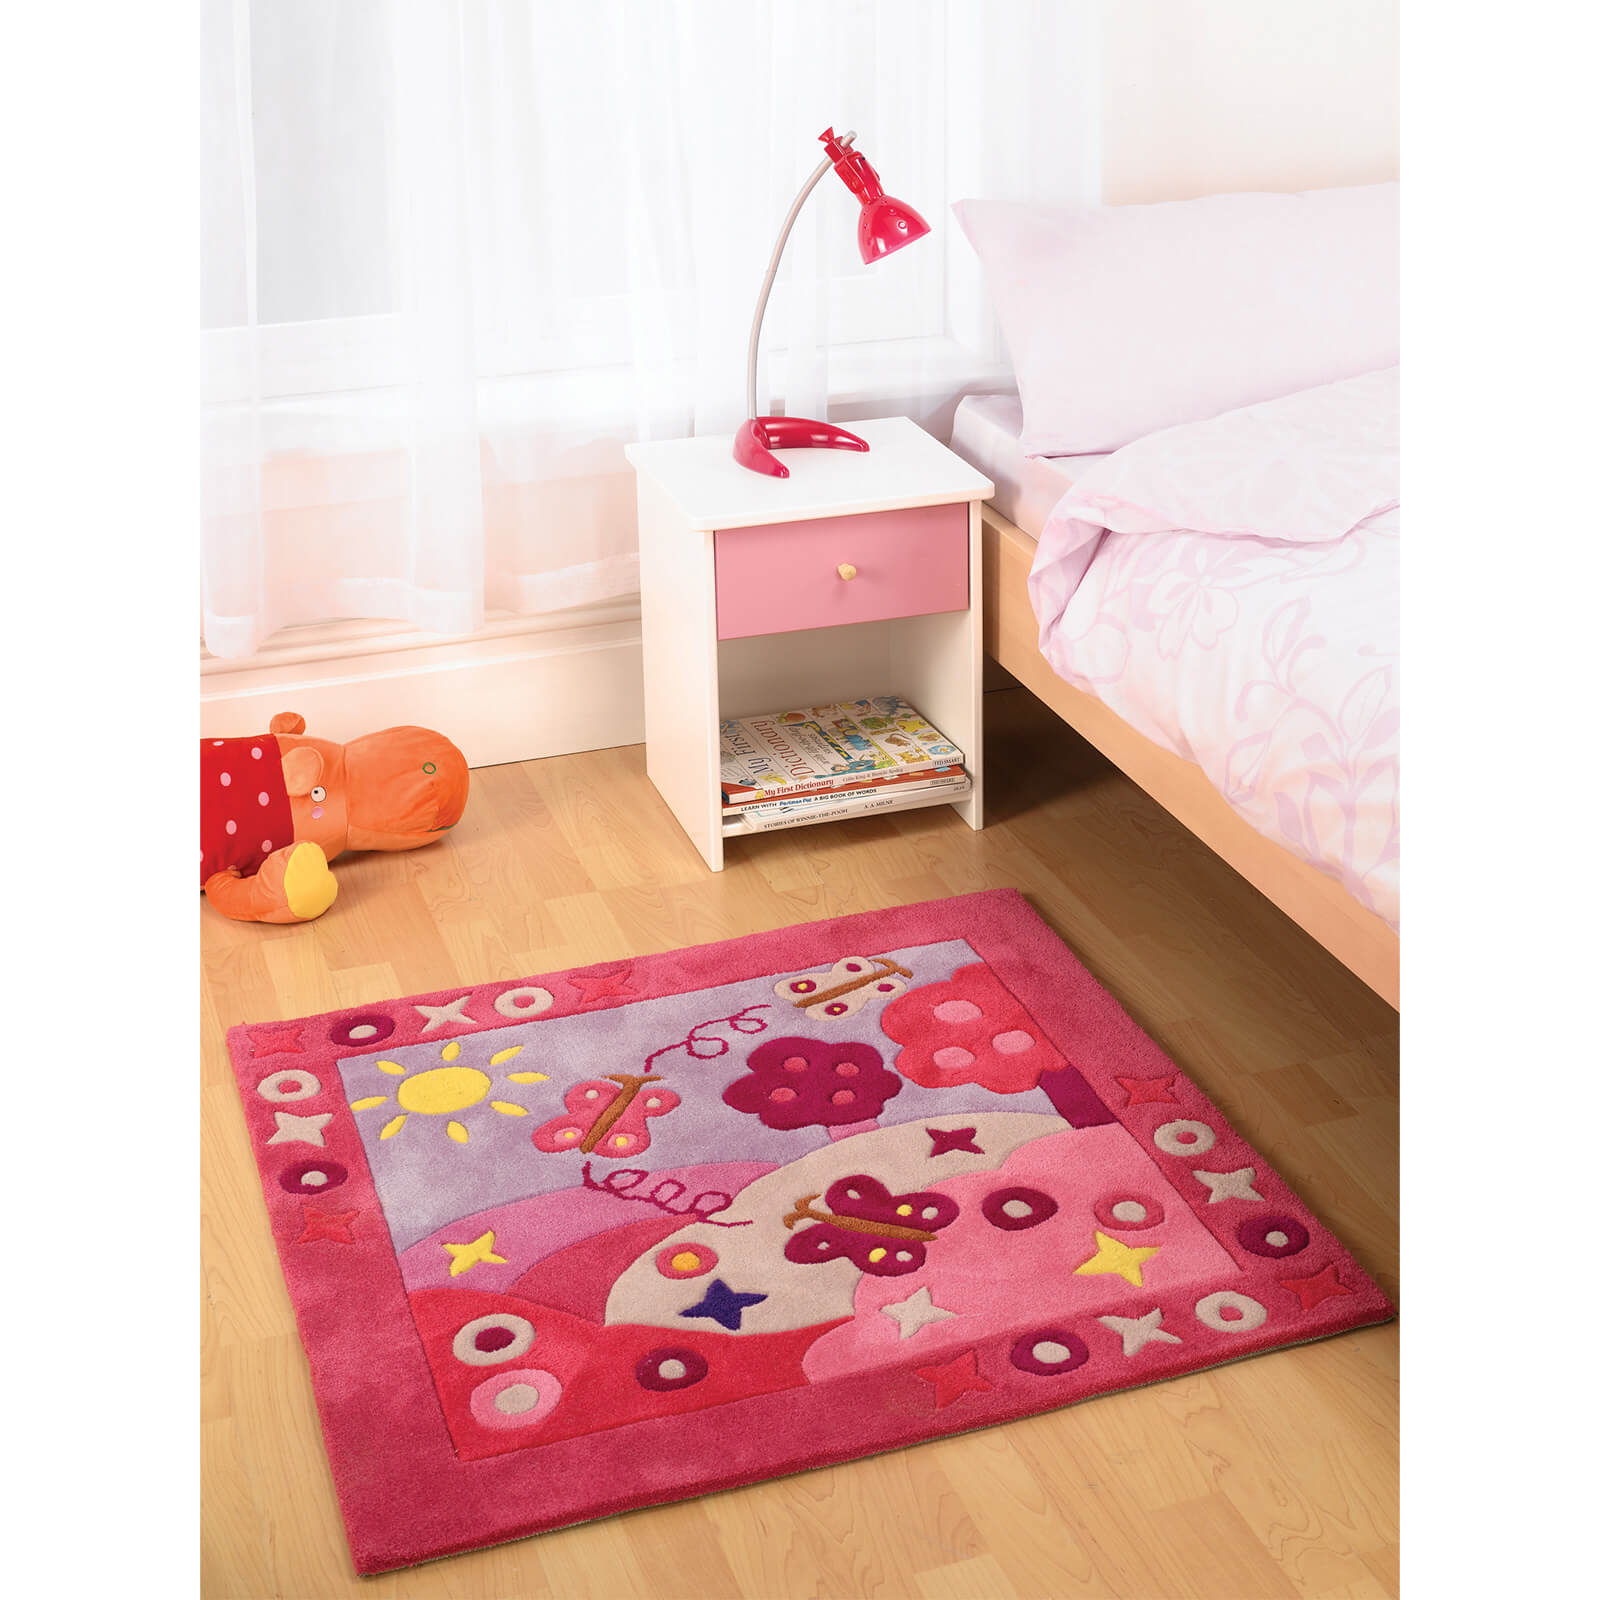 Tapis Flair Kiddy Play Rugs - Scène d